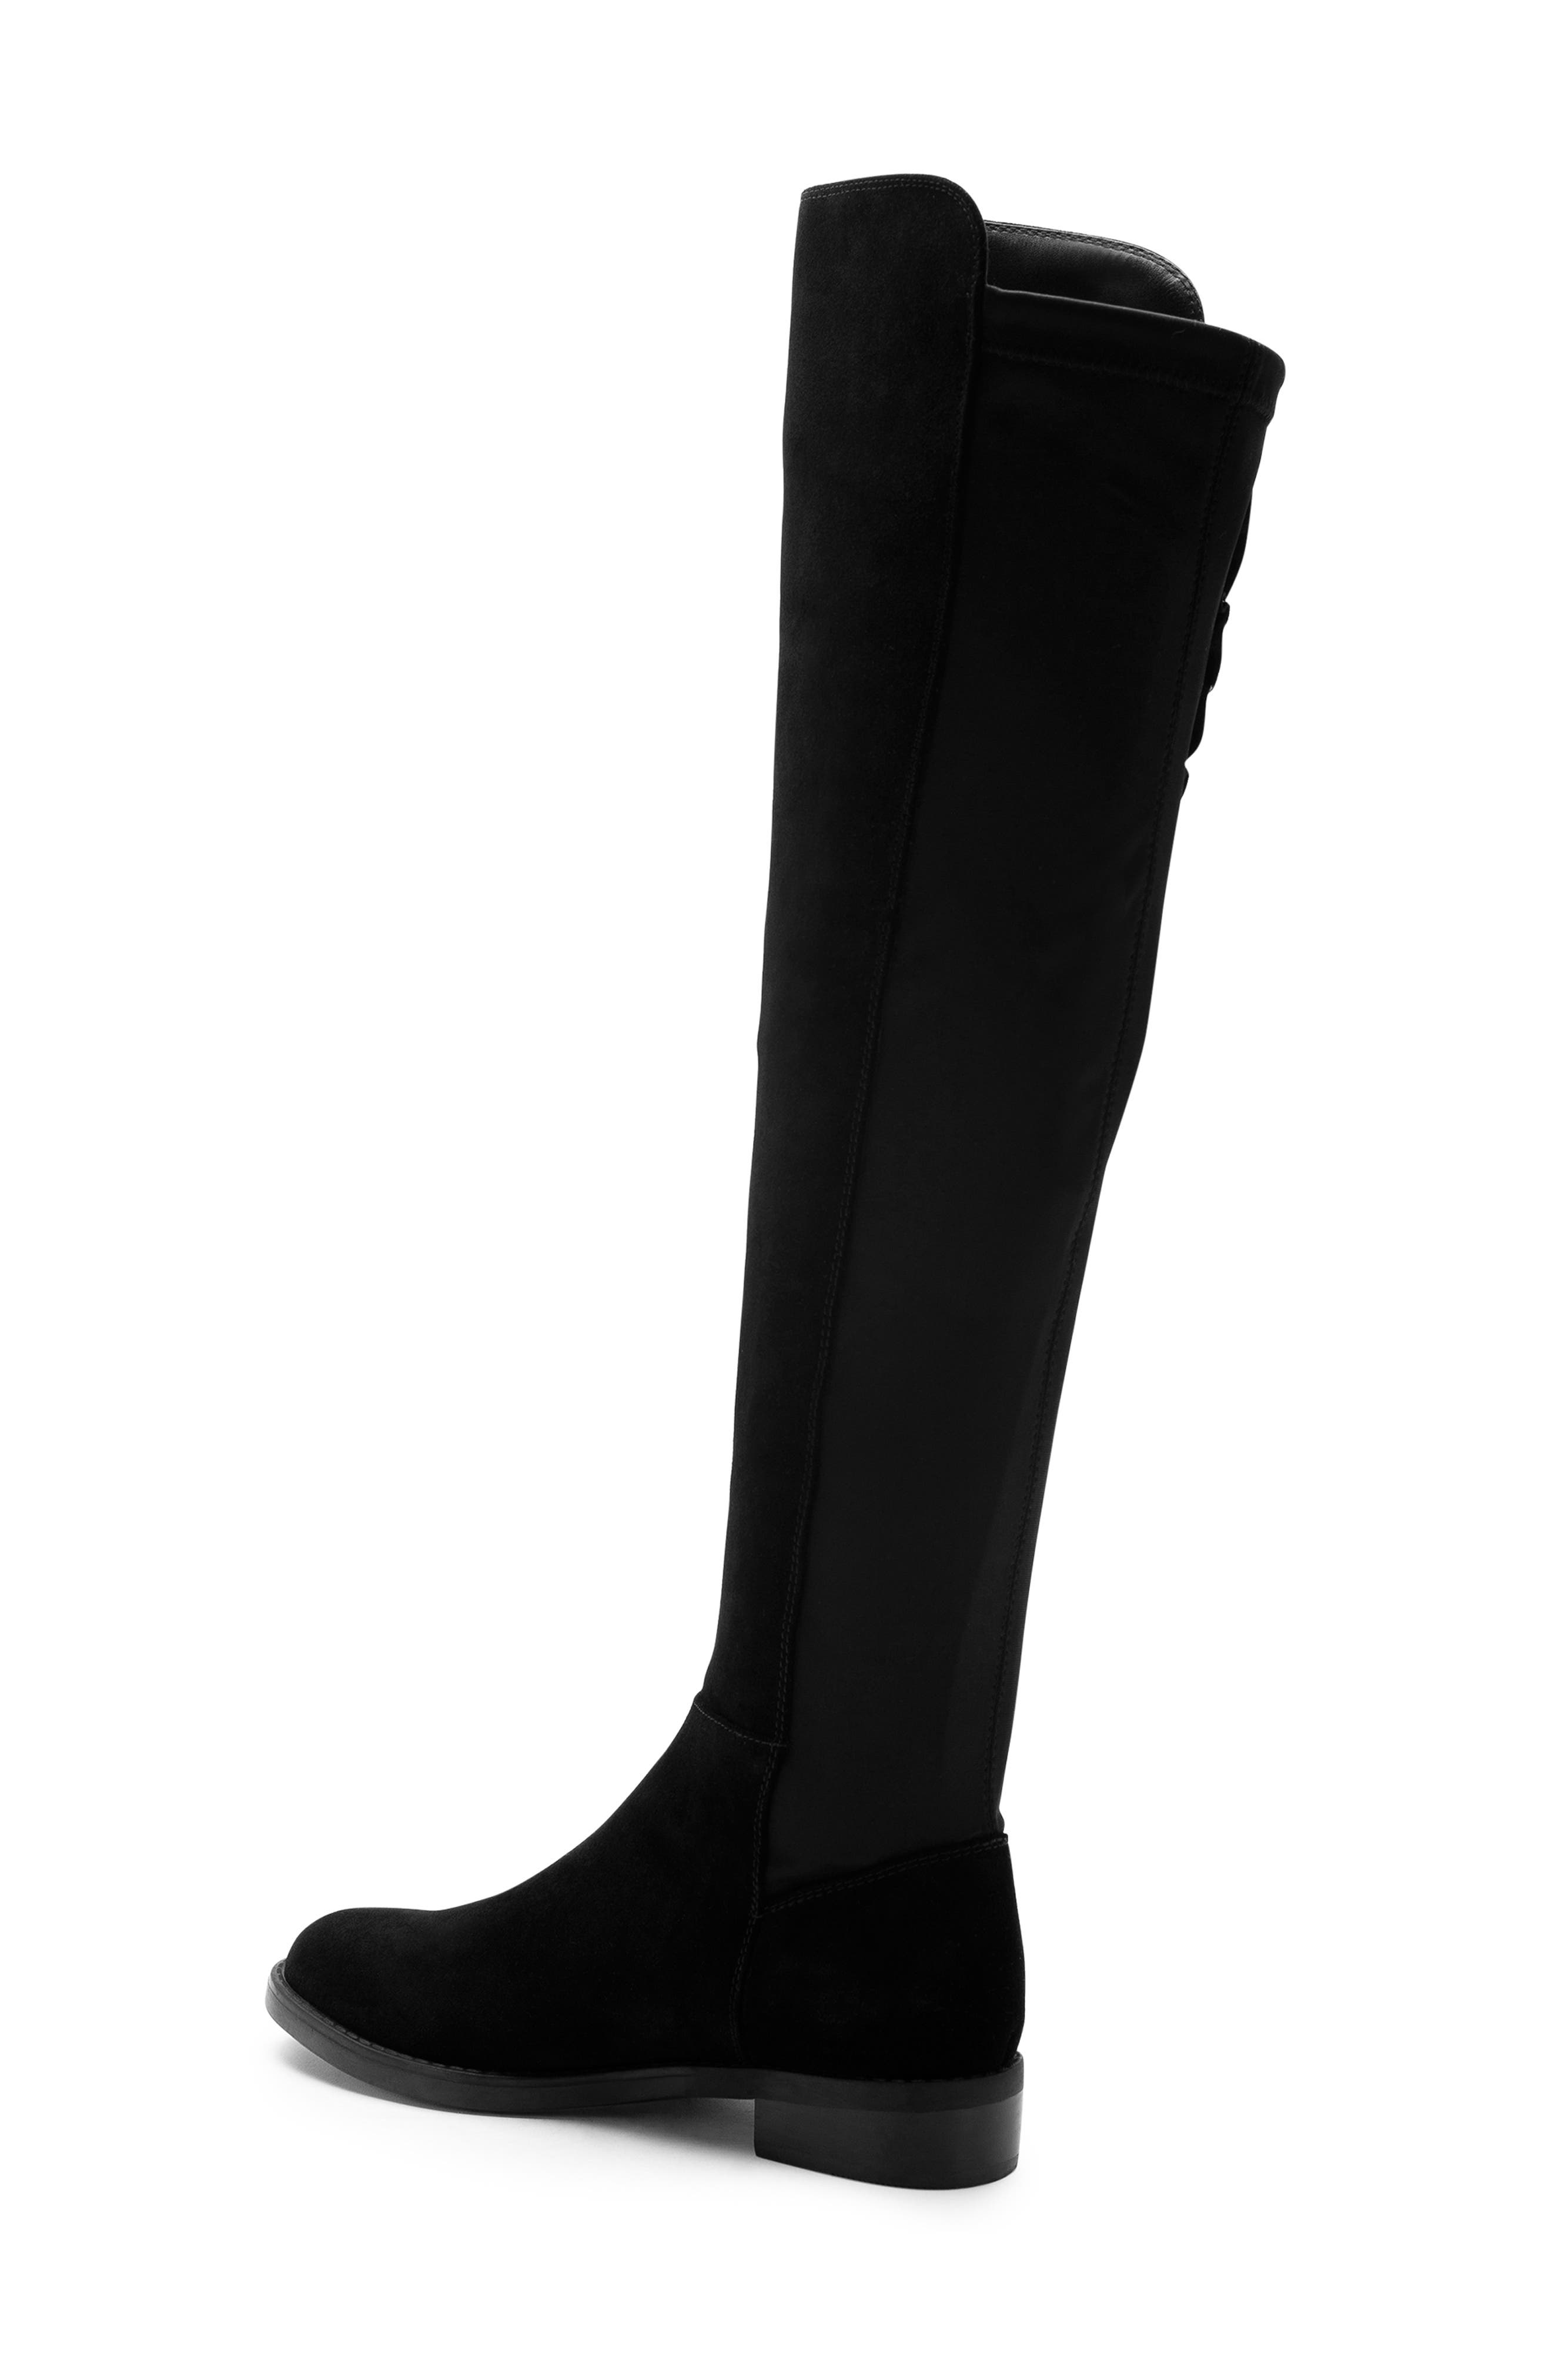 BLONDO, Ethos Over the Knee Waterproof Stretch Boot, Alternate thumbnail 2, color, BLACK SUEDE